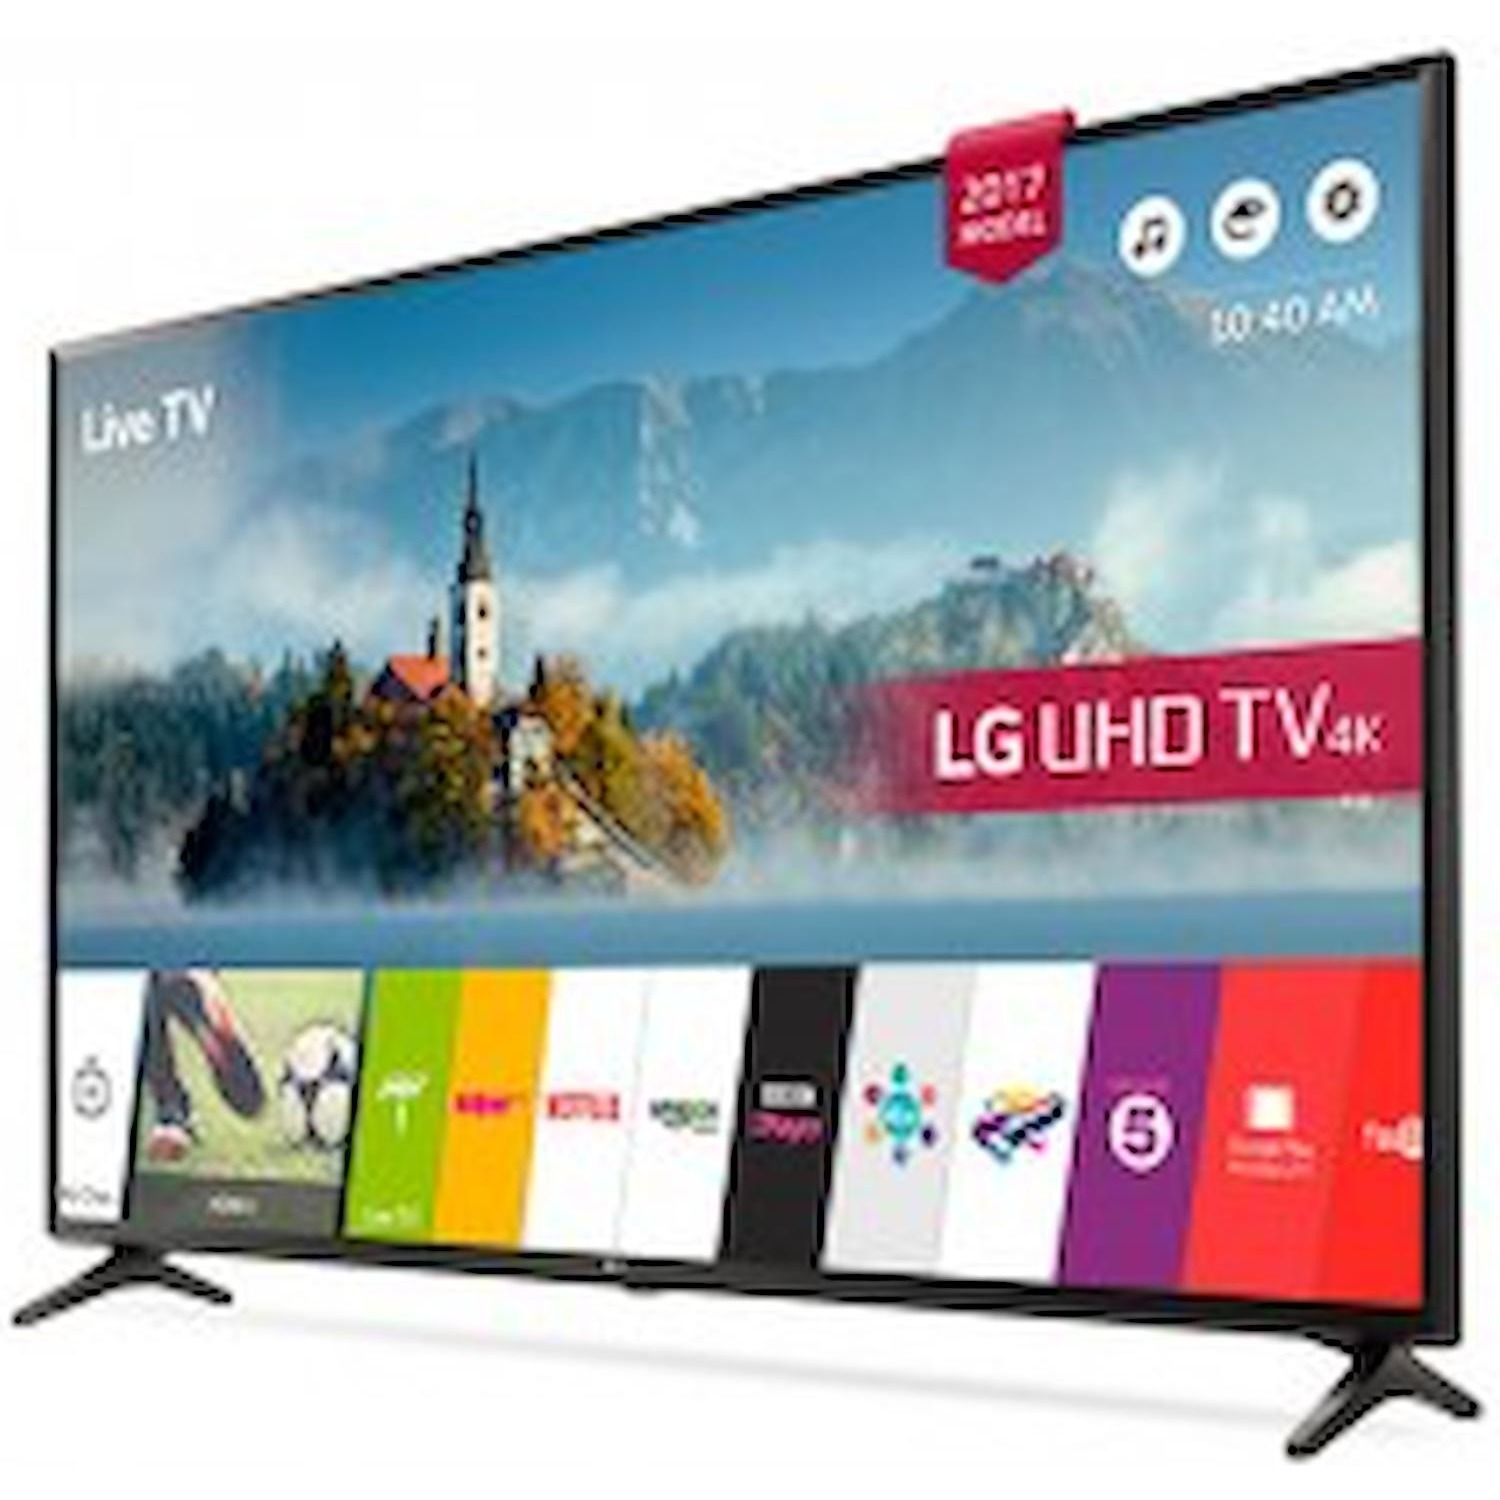 Immagine per TV LED Smart 4K UHD LG 49UJ630V da DIMOStore